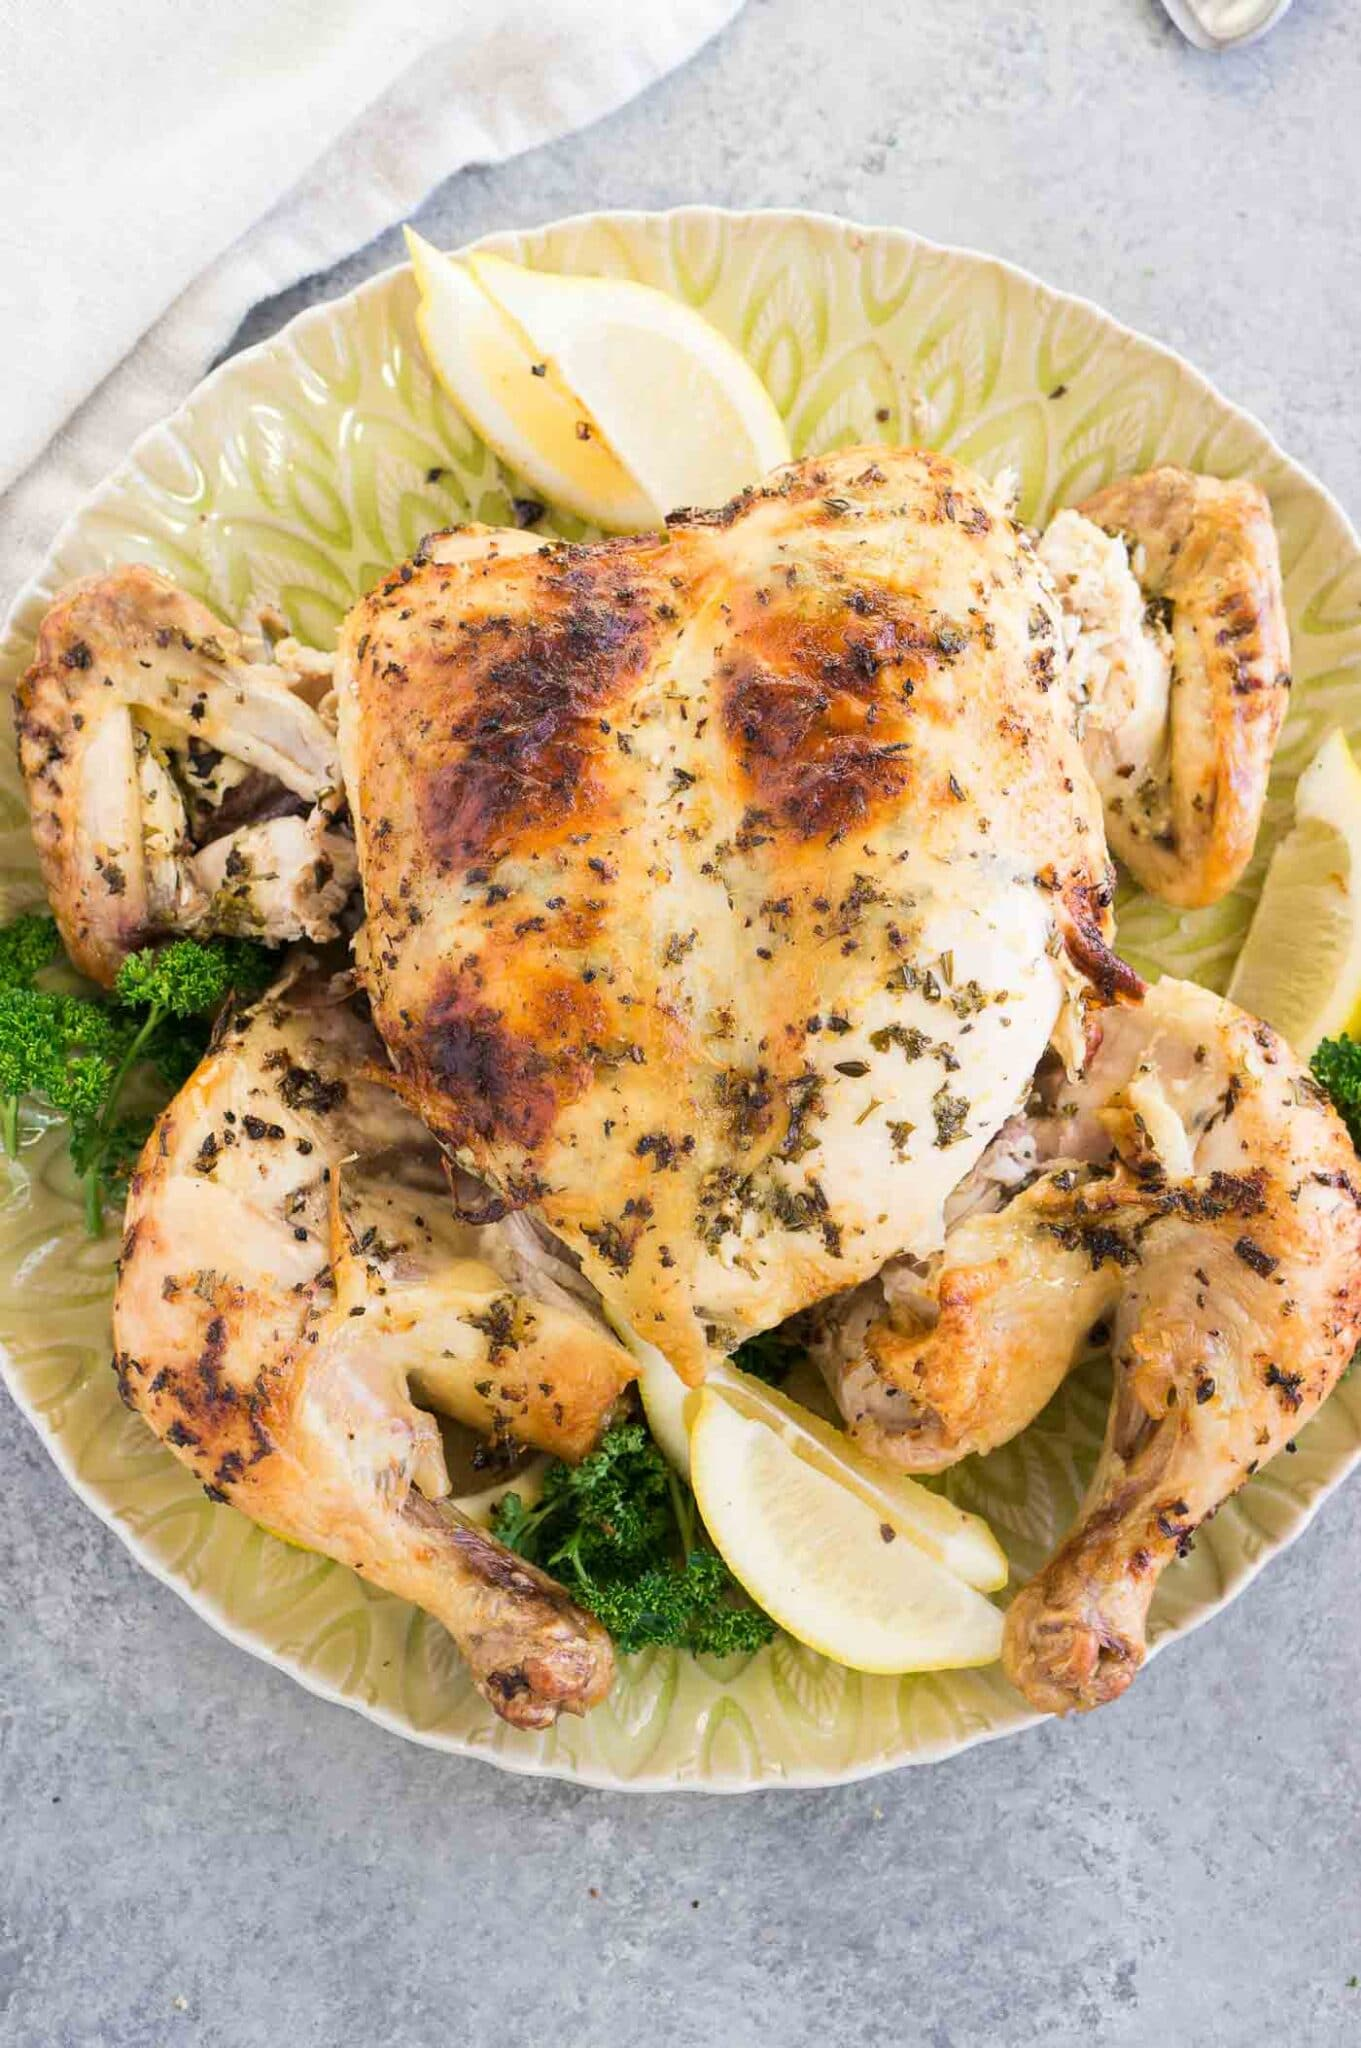 cut chicken after roasting